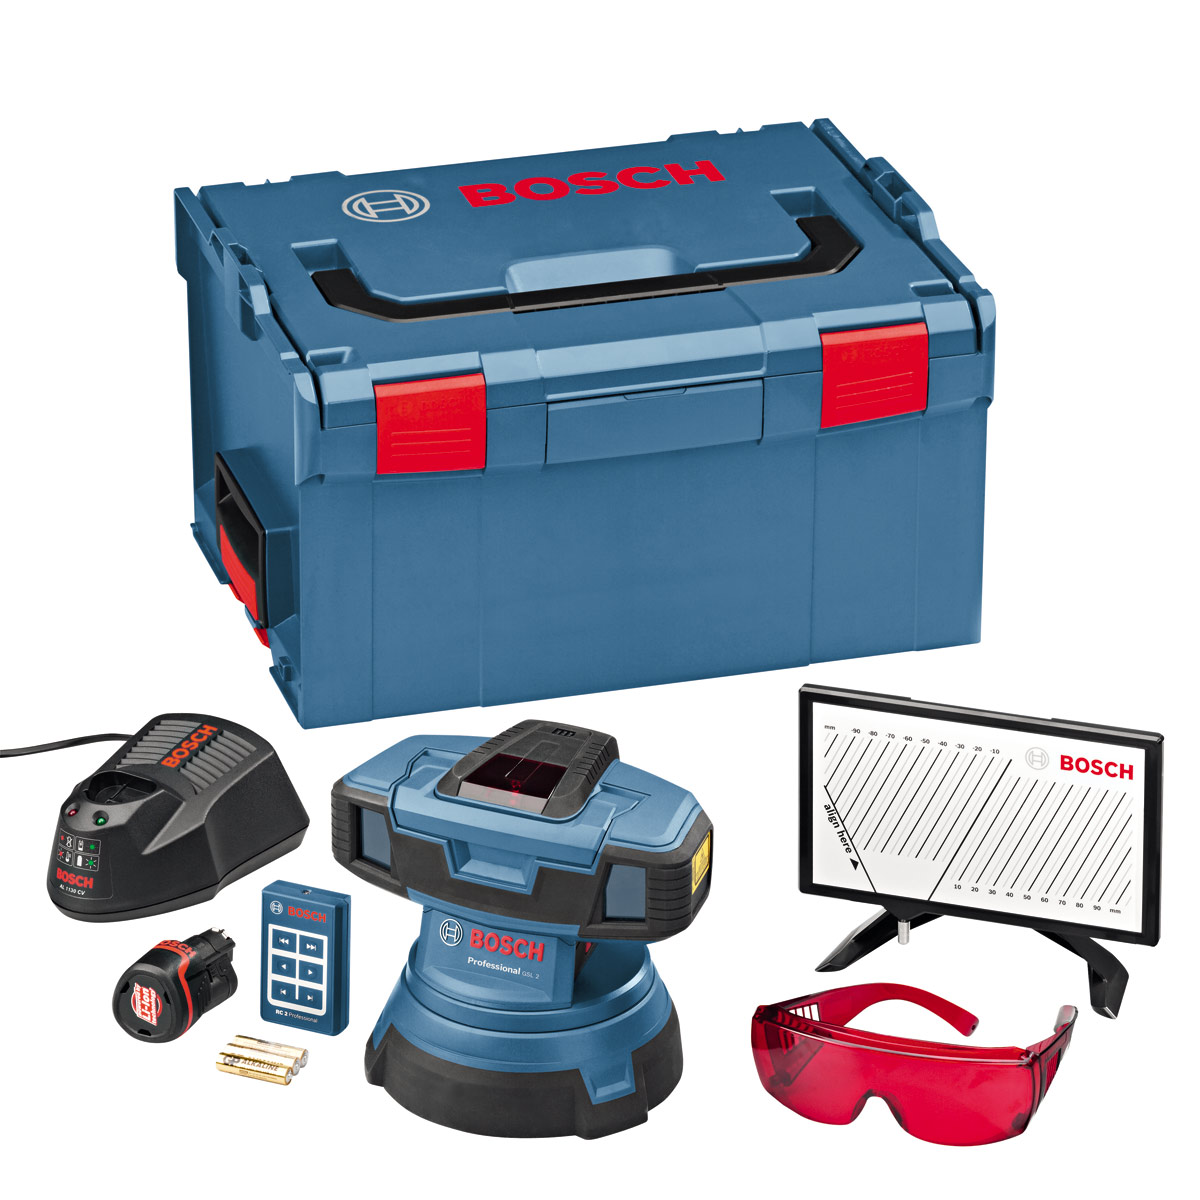 Bosch GSL 2 Automatic Surface Laser